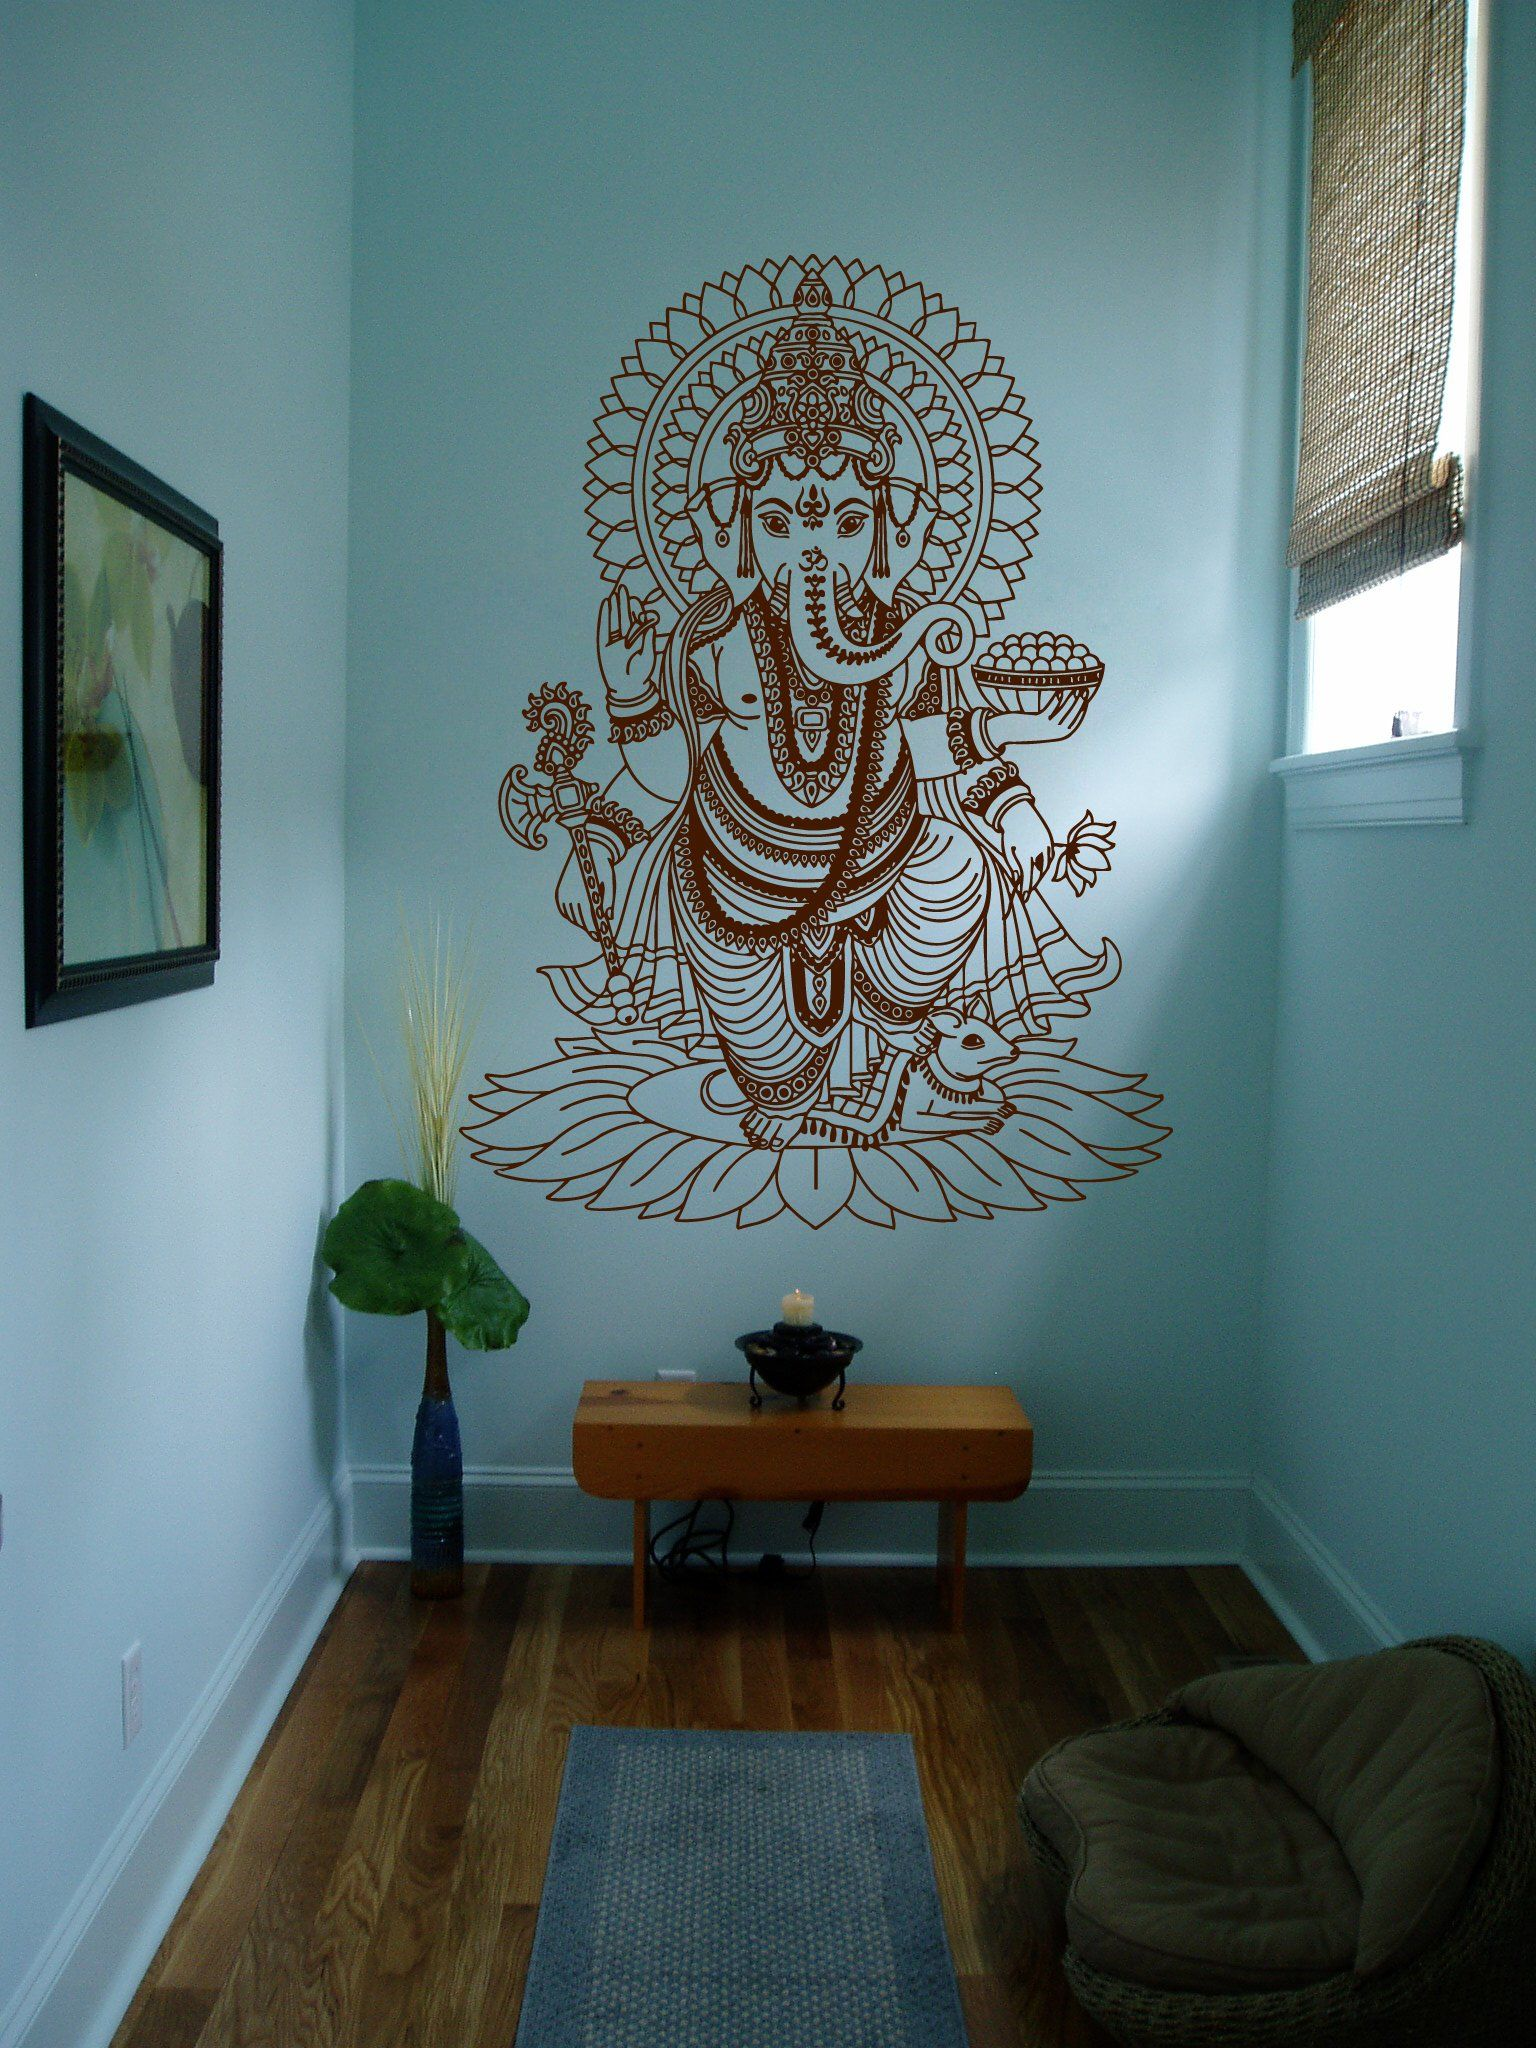 Ik430 wall decal sticker room decor wall art mural indian for Bedroom painting ideas india